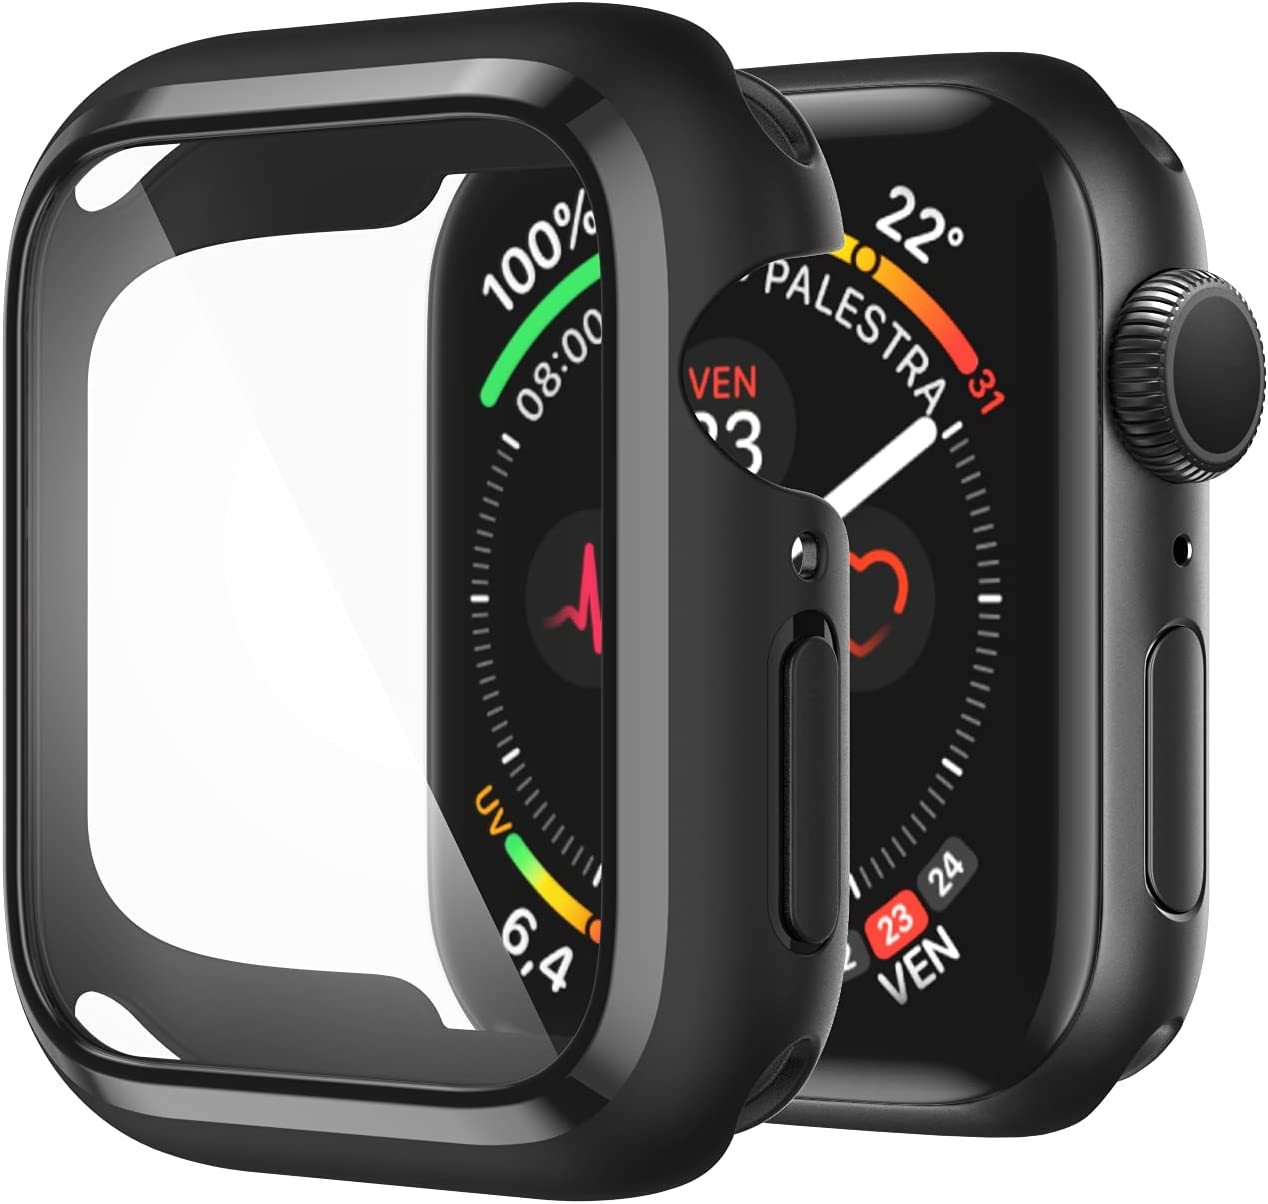 AVIDDA Compatible Apple Watch Case 42mm Built-in Tempered Glass Screen Protector, Soft TPU Ultra-Thin Bumper Full Cover Protective Case for iWatch Series 3/2/1 42mm Black